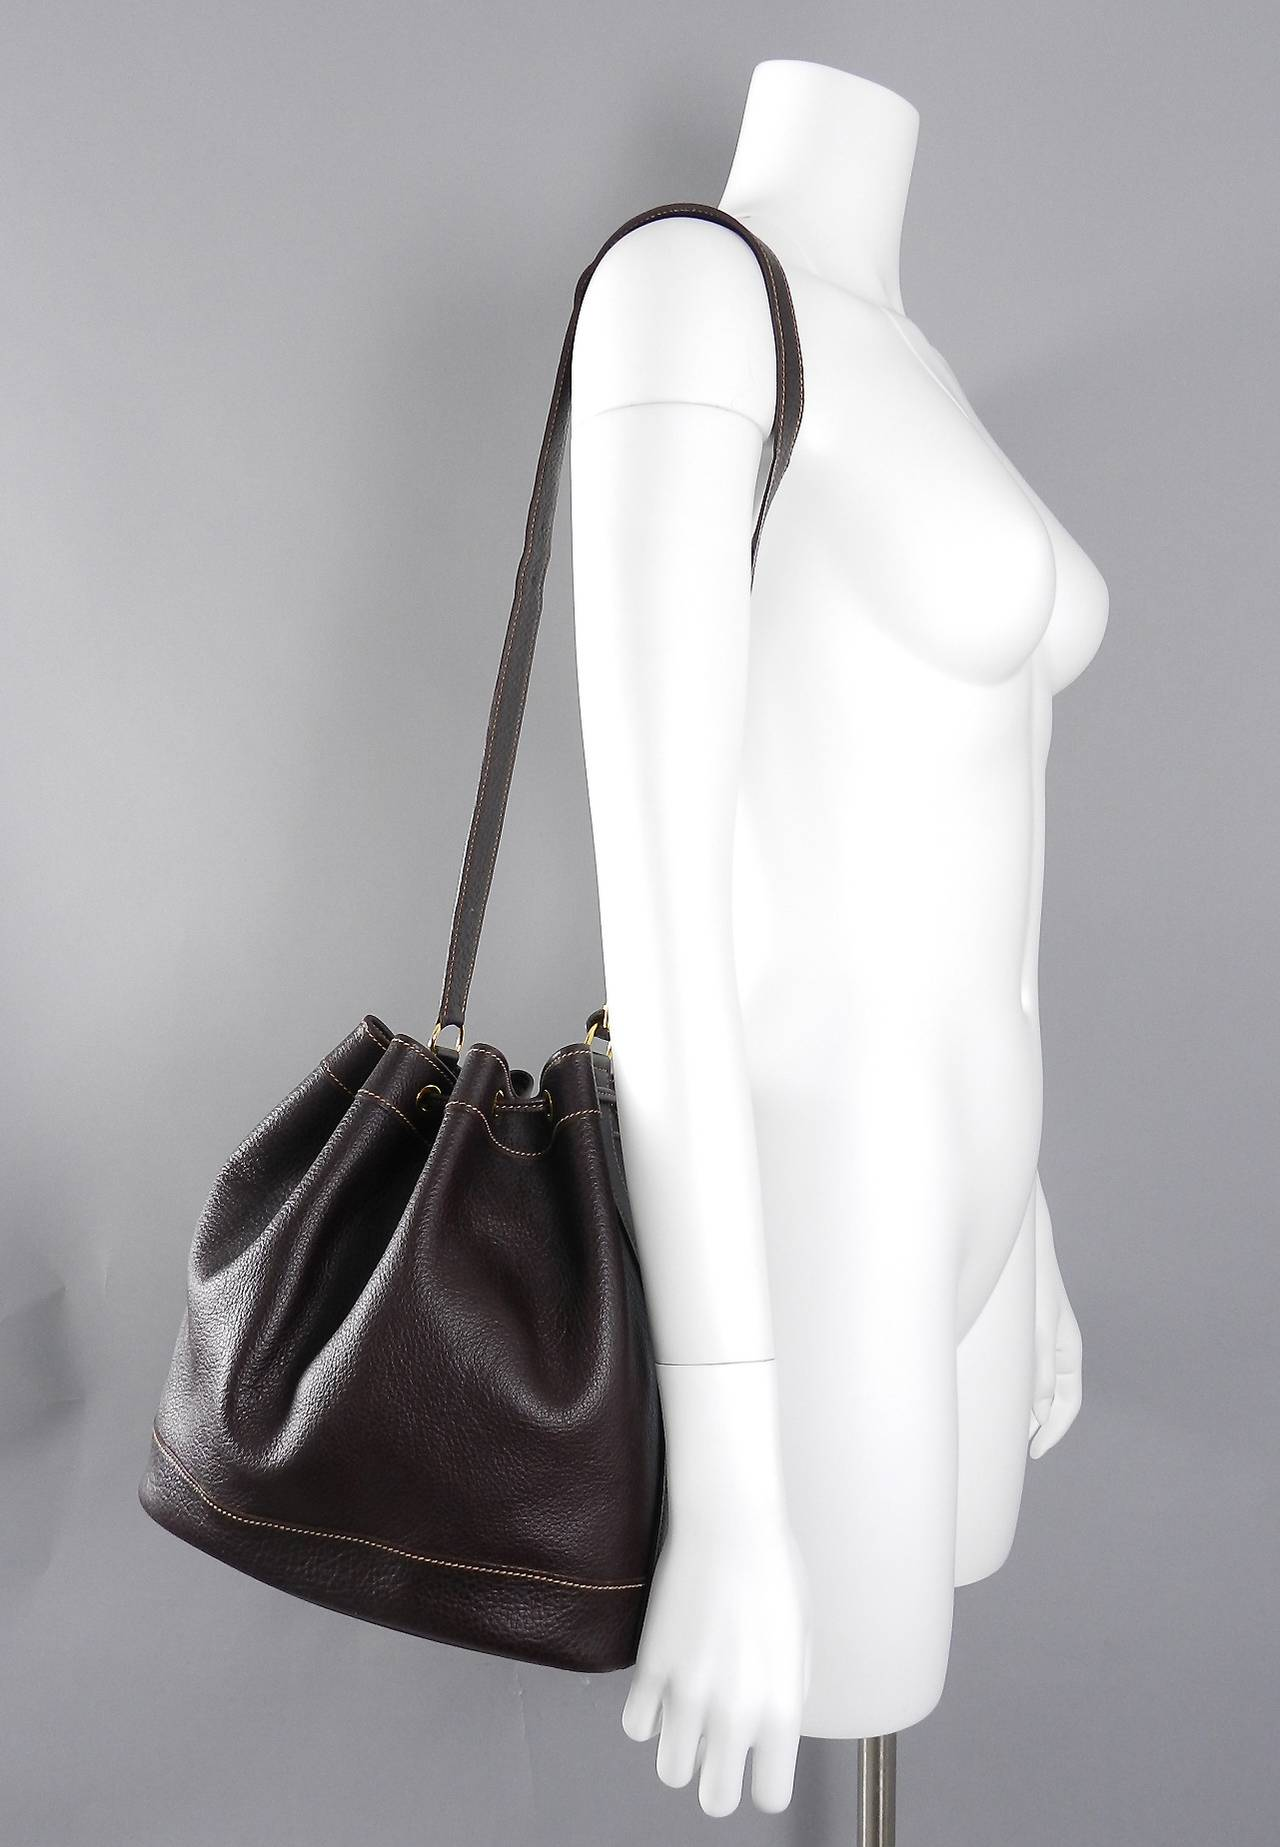 hermes constance bag price - Hermes Vintage 1999 Dark Brown Leather Market Bucket Bag at 1stdibs